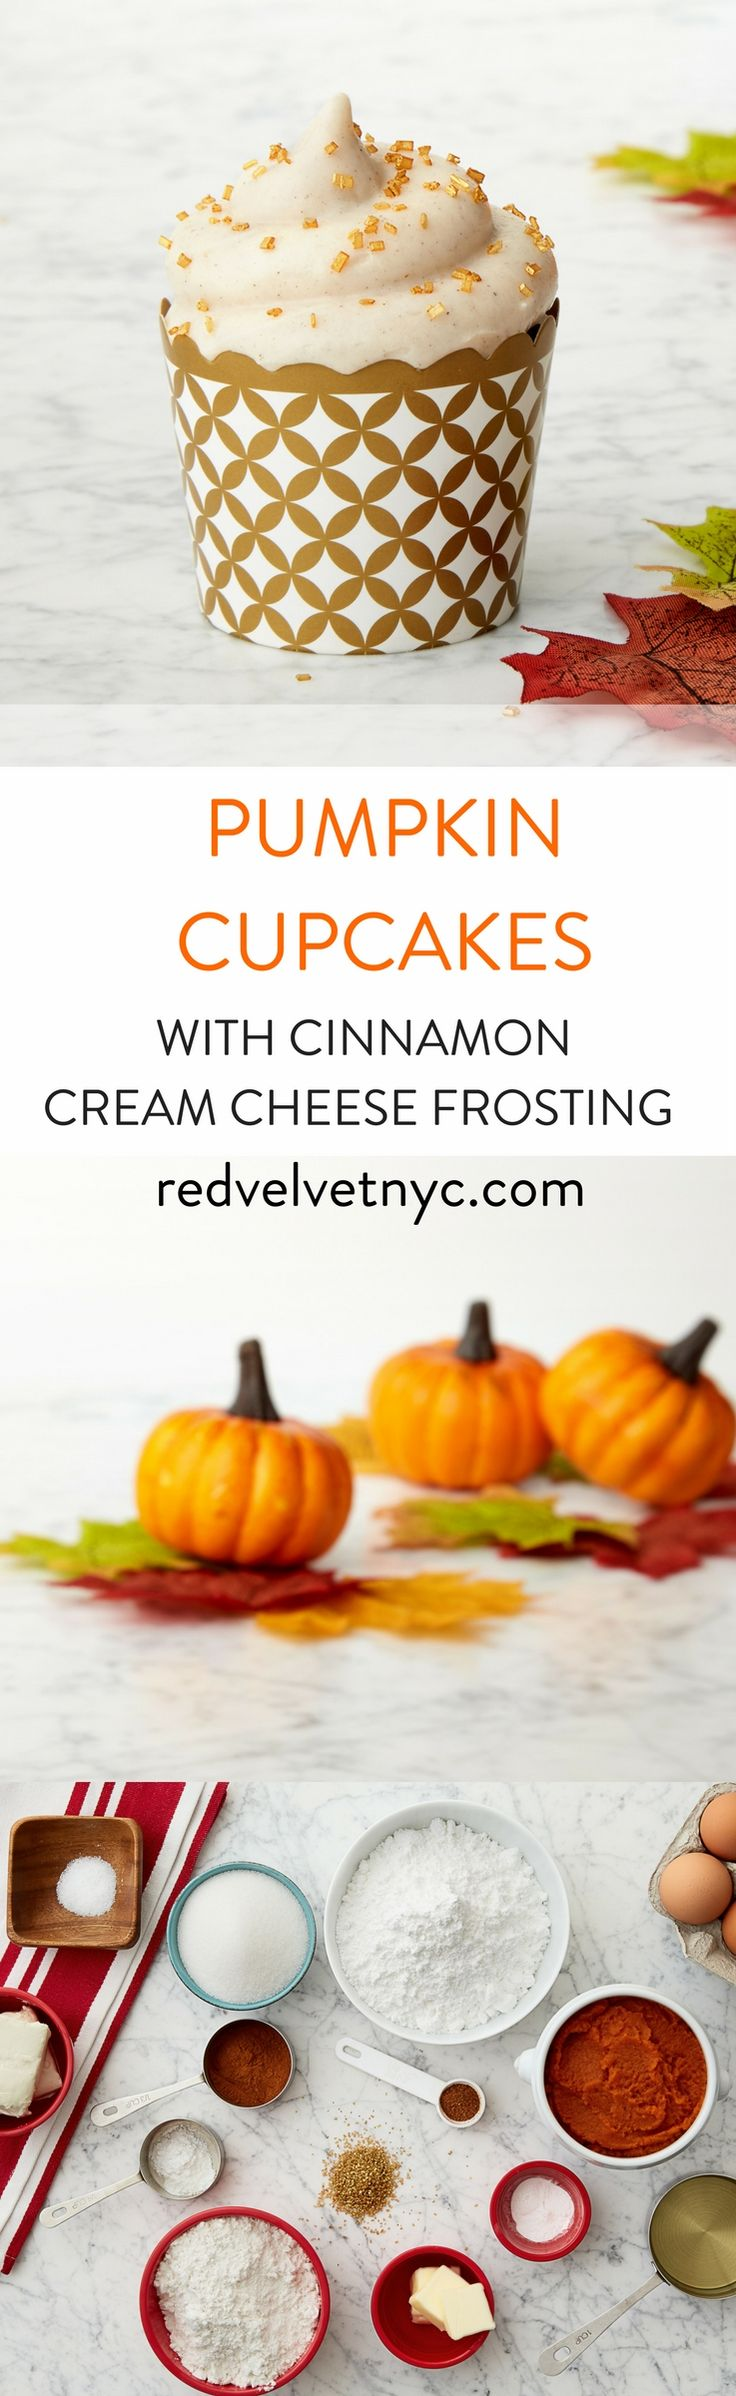 Easy fall dessert. Pumpkin cupcakes with cinnamon cream cheese frosting are the best. Spice up your fall menu with this delicious and moist pumpkin cupcake! Baking from scratch! Our Baking kit comes with an easy-to-follow recipe card and all the ingredients you need. Receive 15% off your first box with code PINTEREST15!